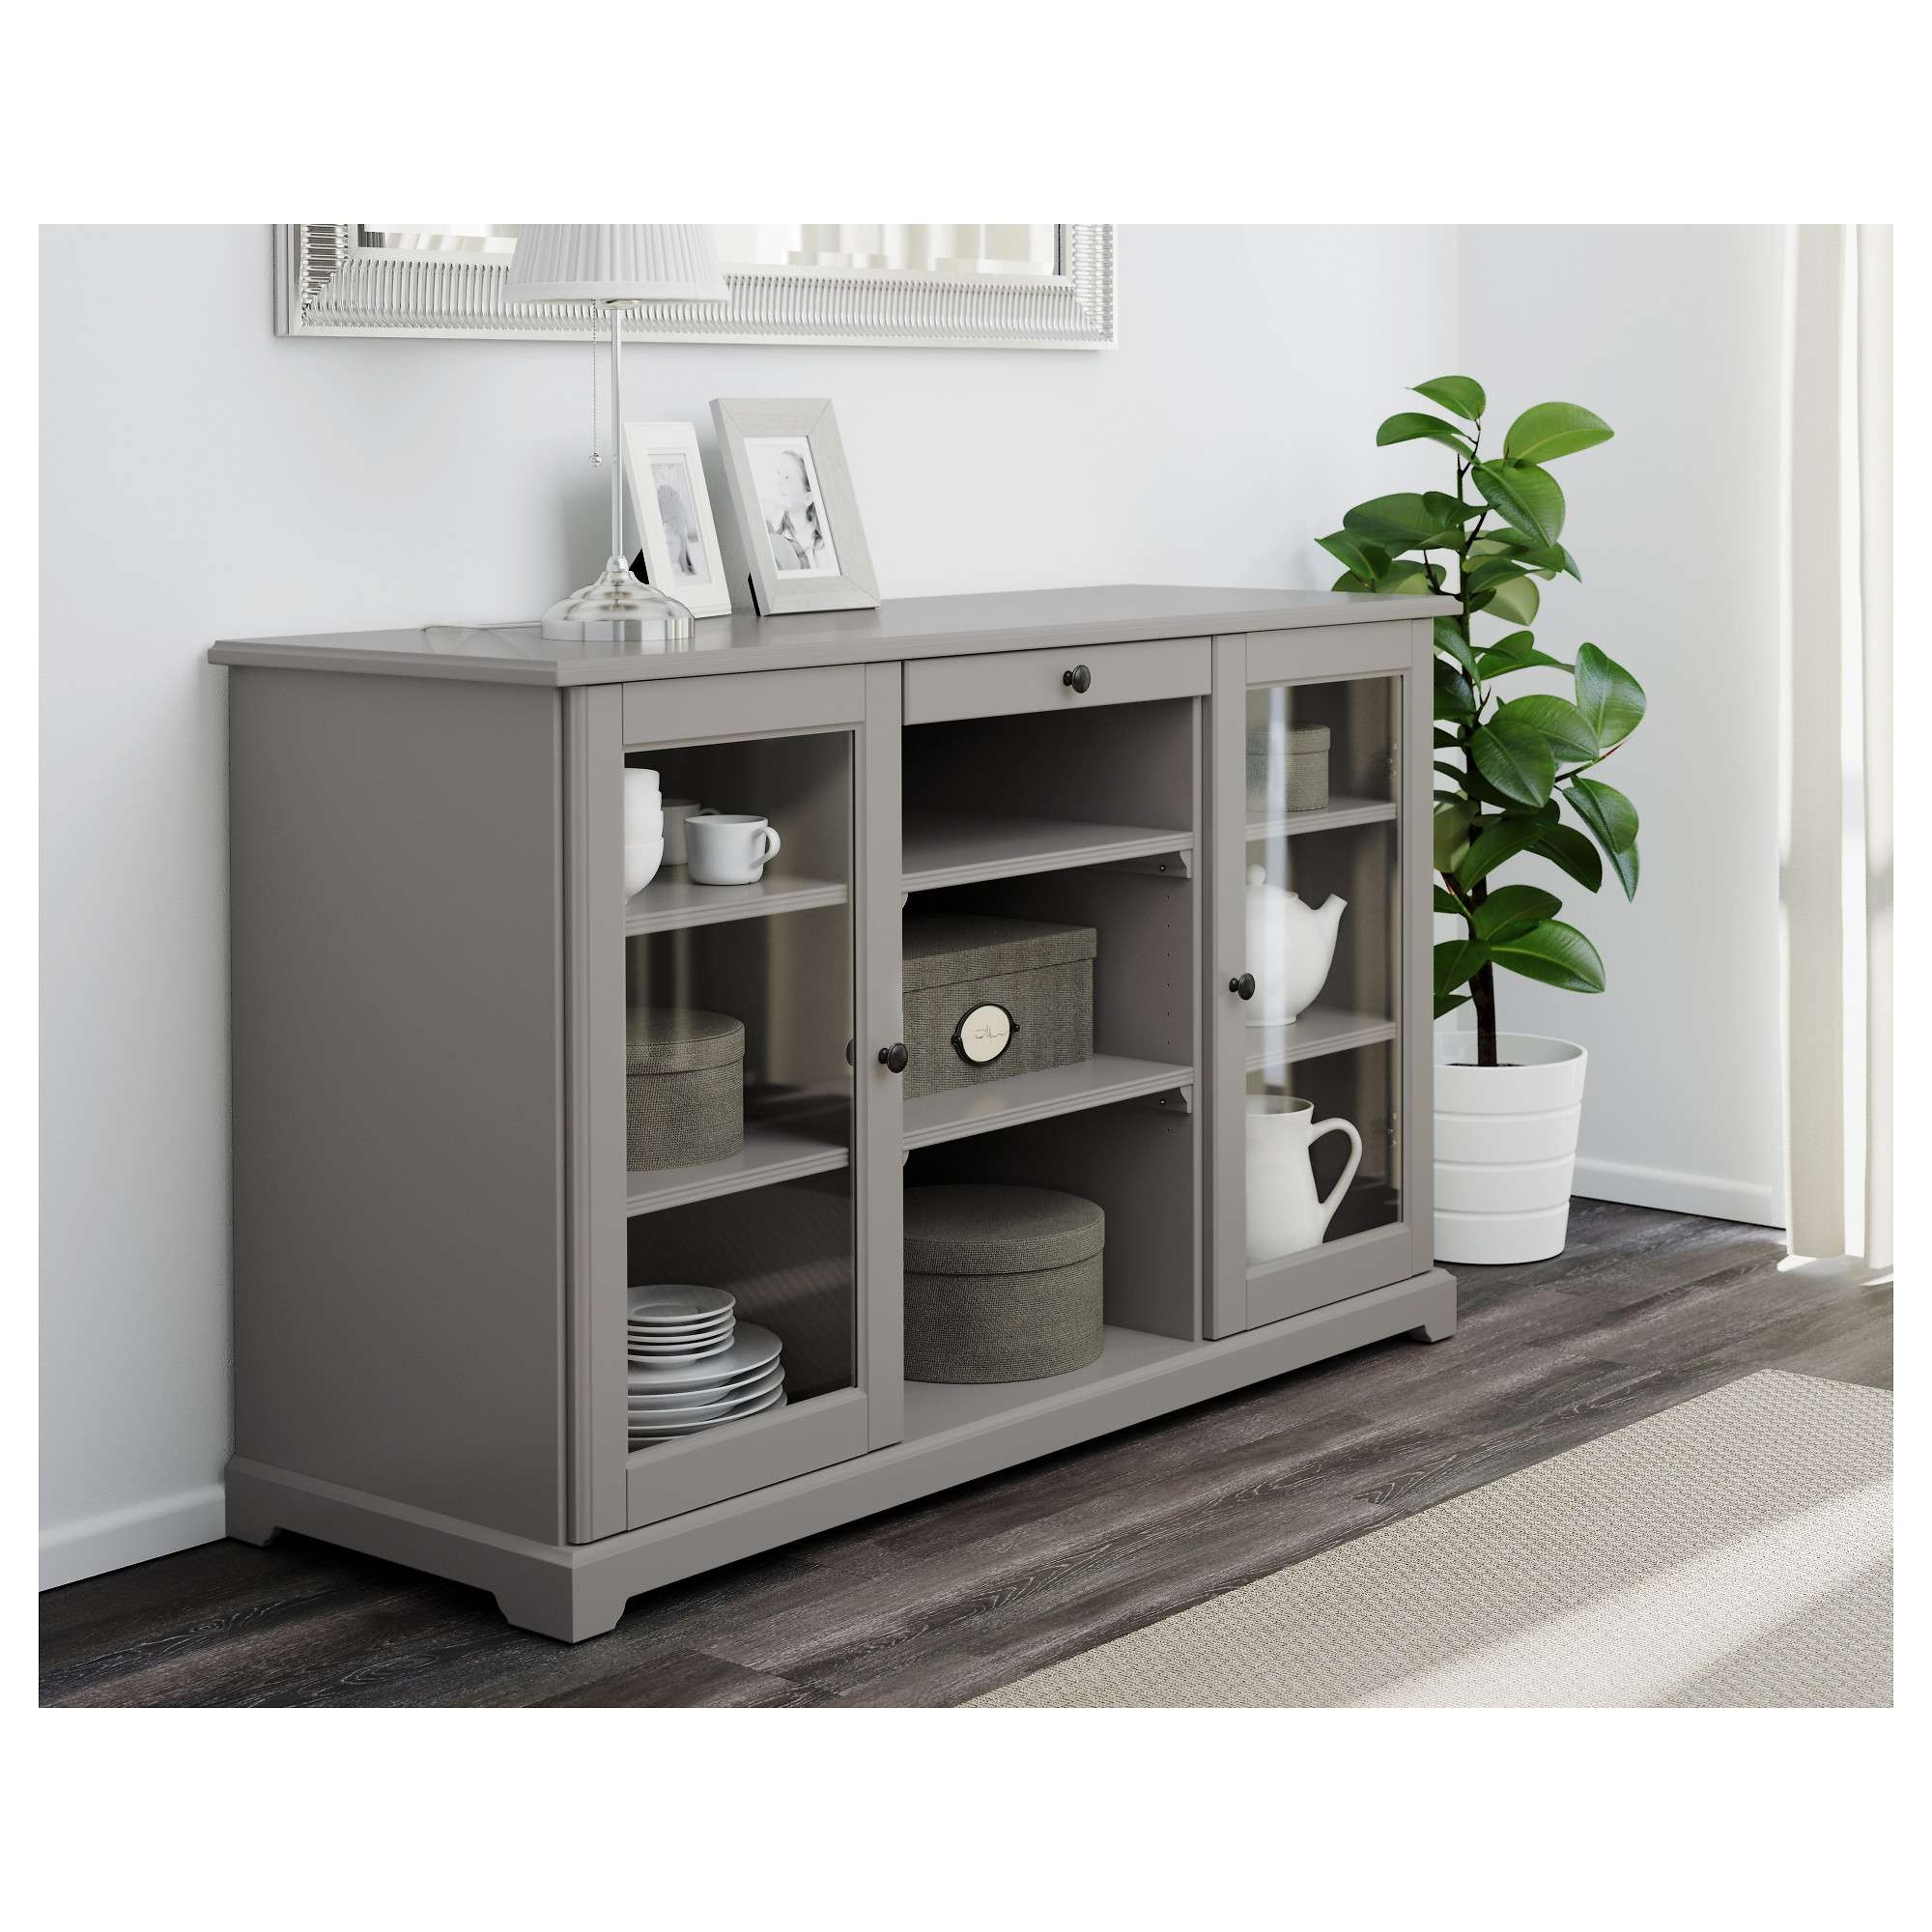 Liatorp Sideboard – White – Ikea Throughout Canada Ikea Sideboards (View 13 of 20)